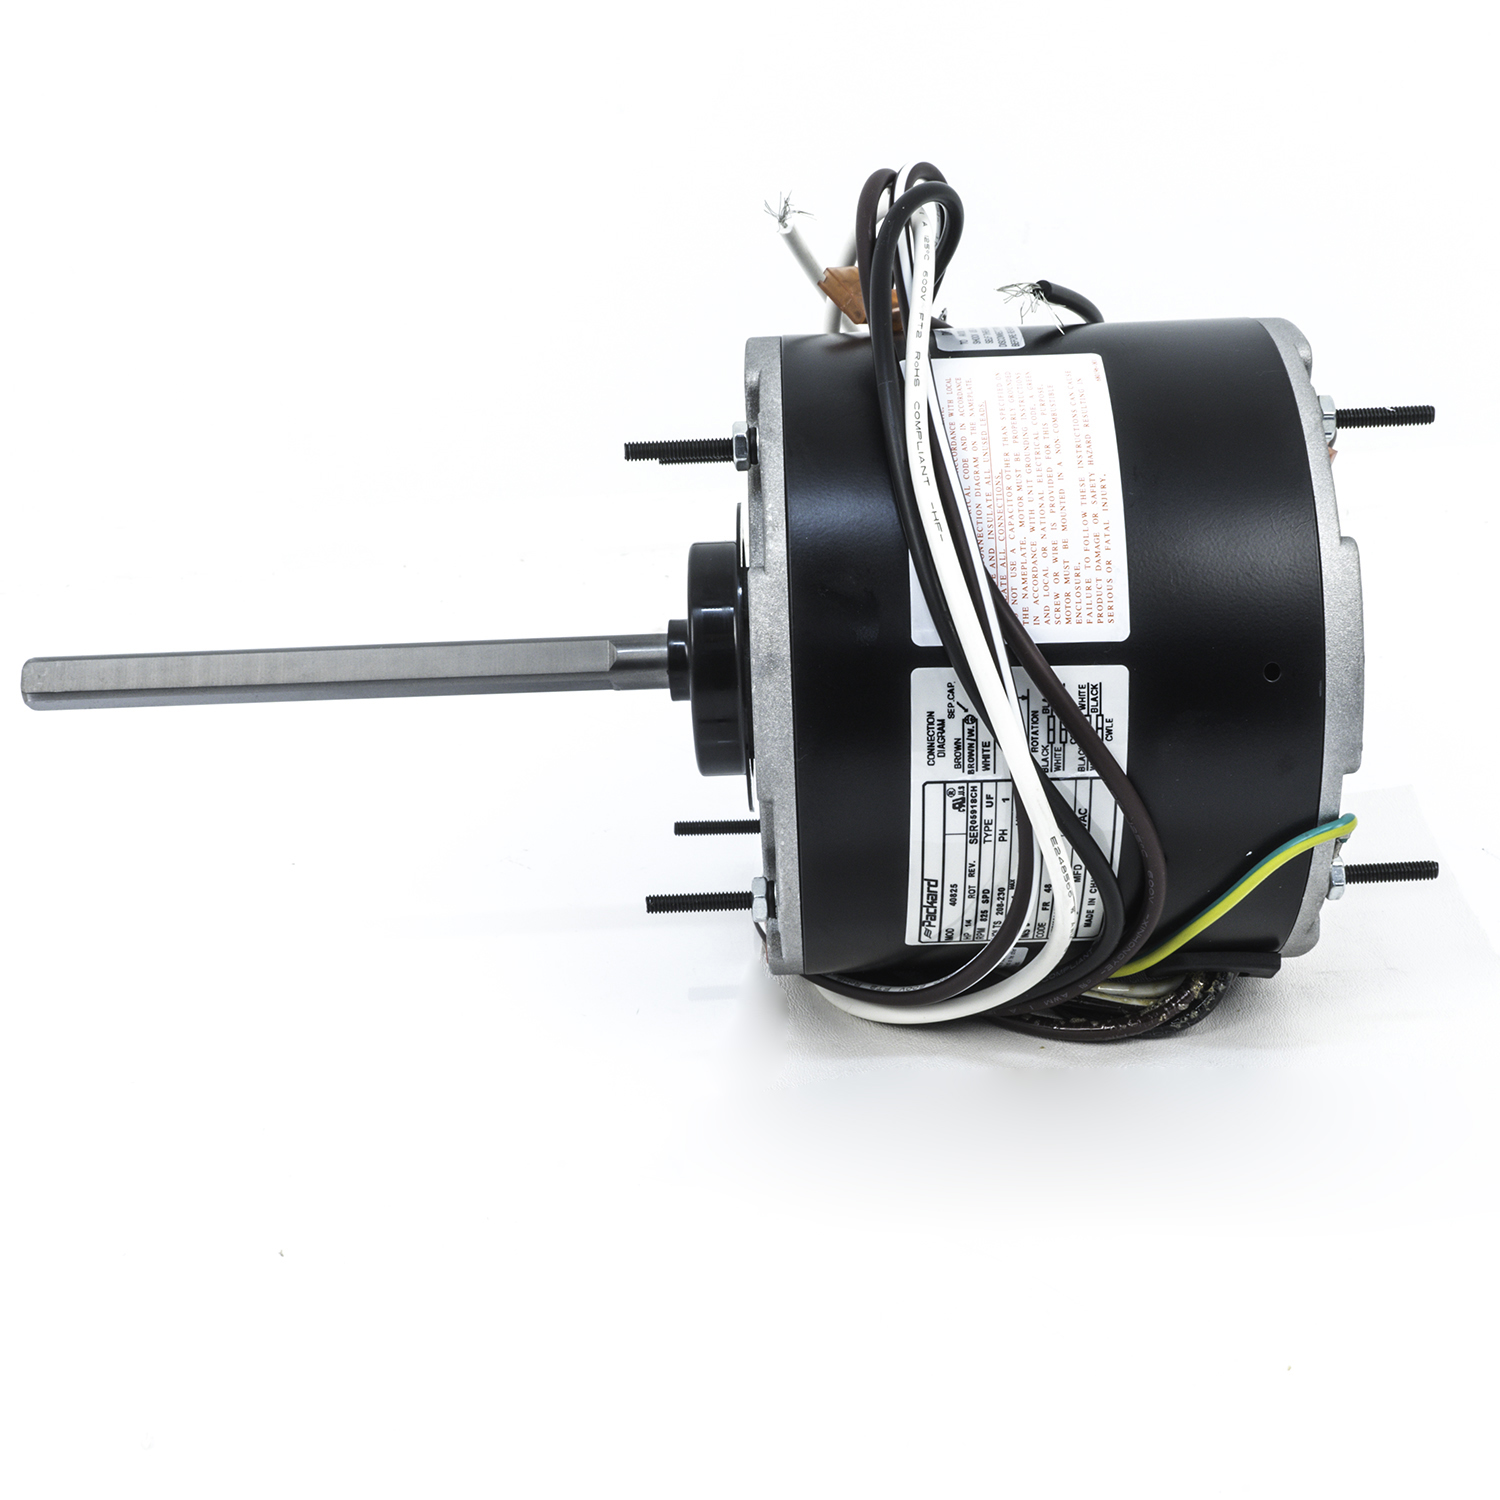 hight resolution of 5 5 8 diameter condenser fan motor 1 4 hp 208 230 volts 825 rpm wiring diagram in addition goodman condenser fan motor 1 4 hp on